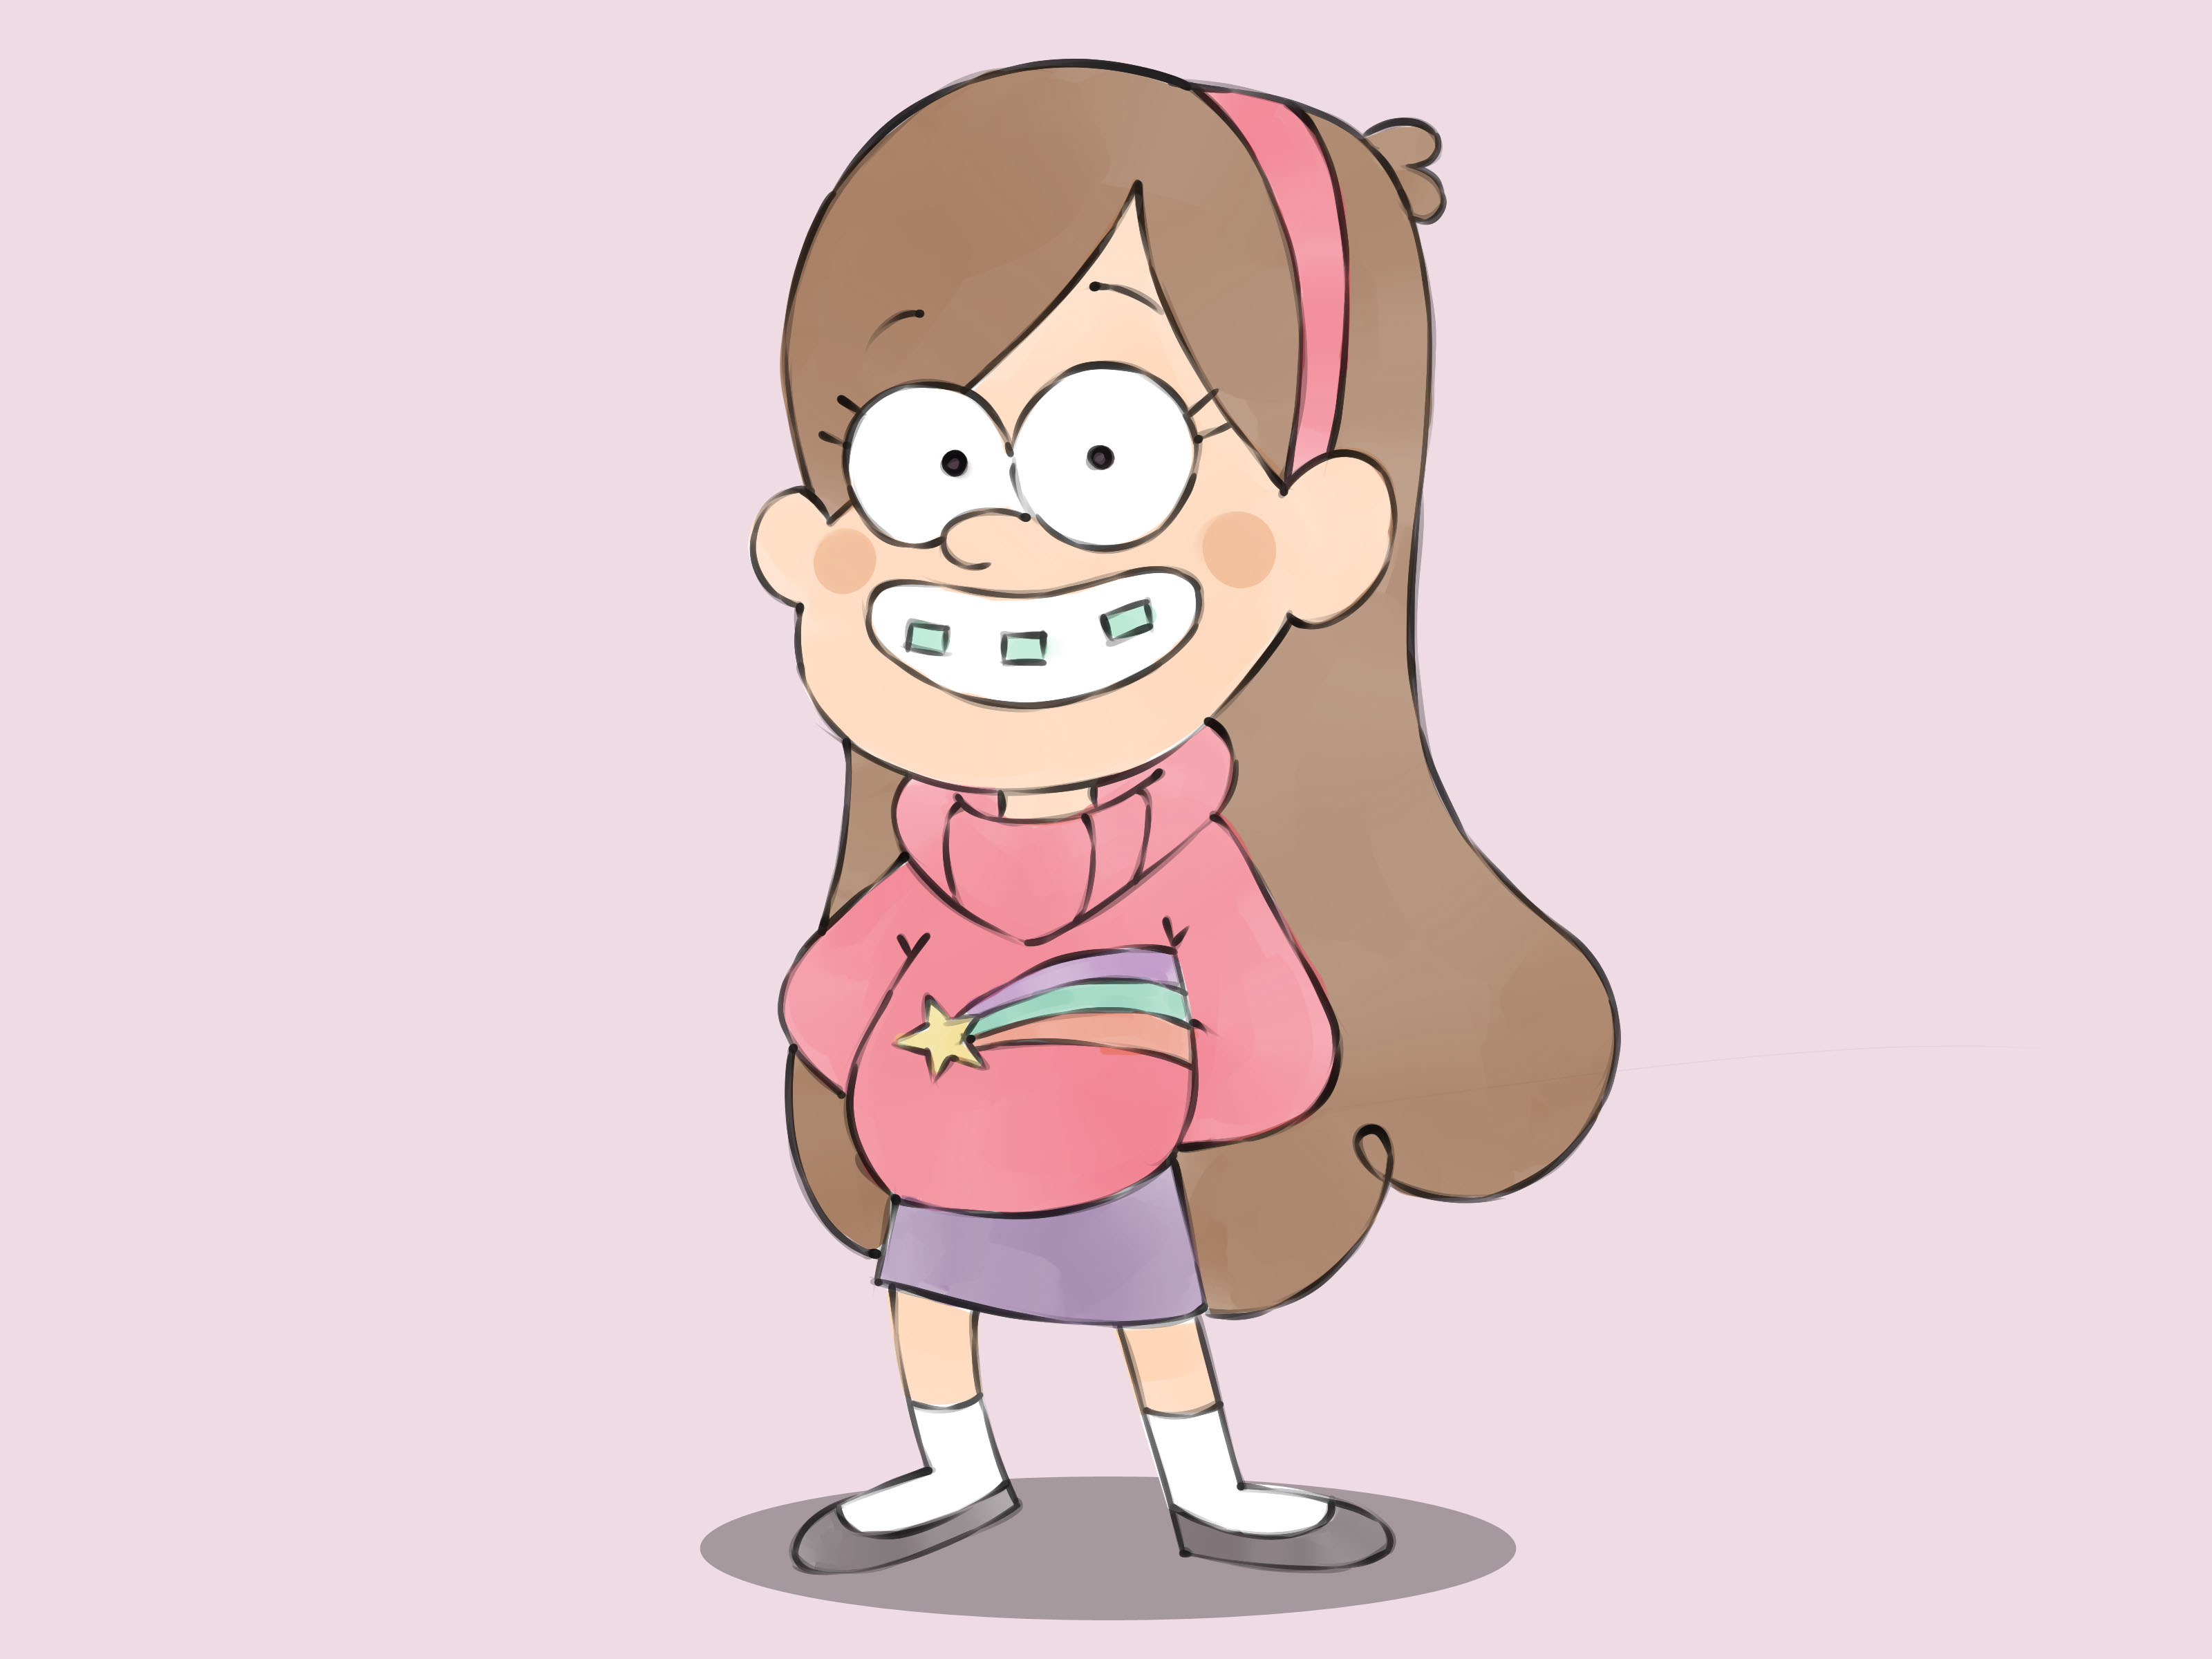 Gravity Falls Waddles Wallpaper How To Draw Mabel Pines From Gravity Falls 7 Steps